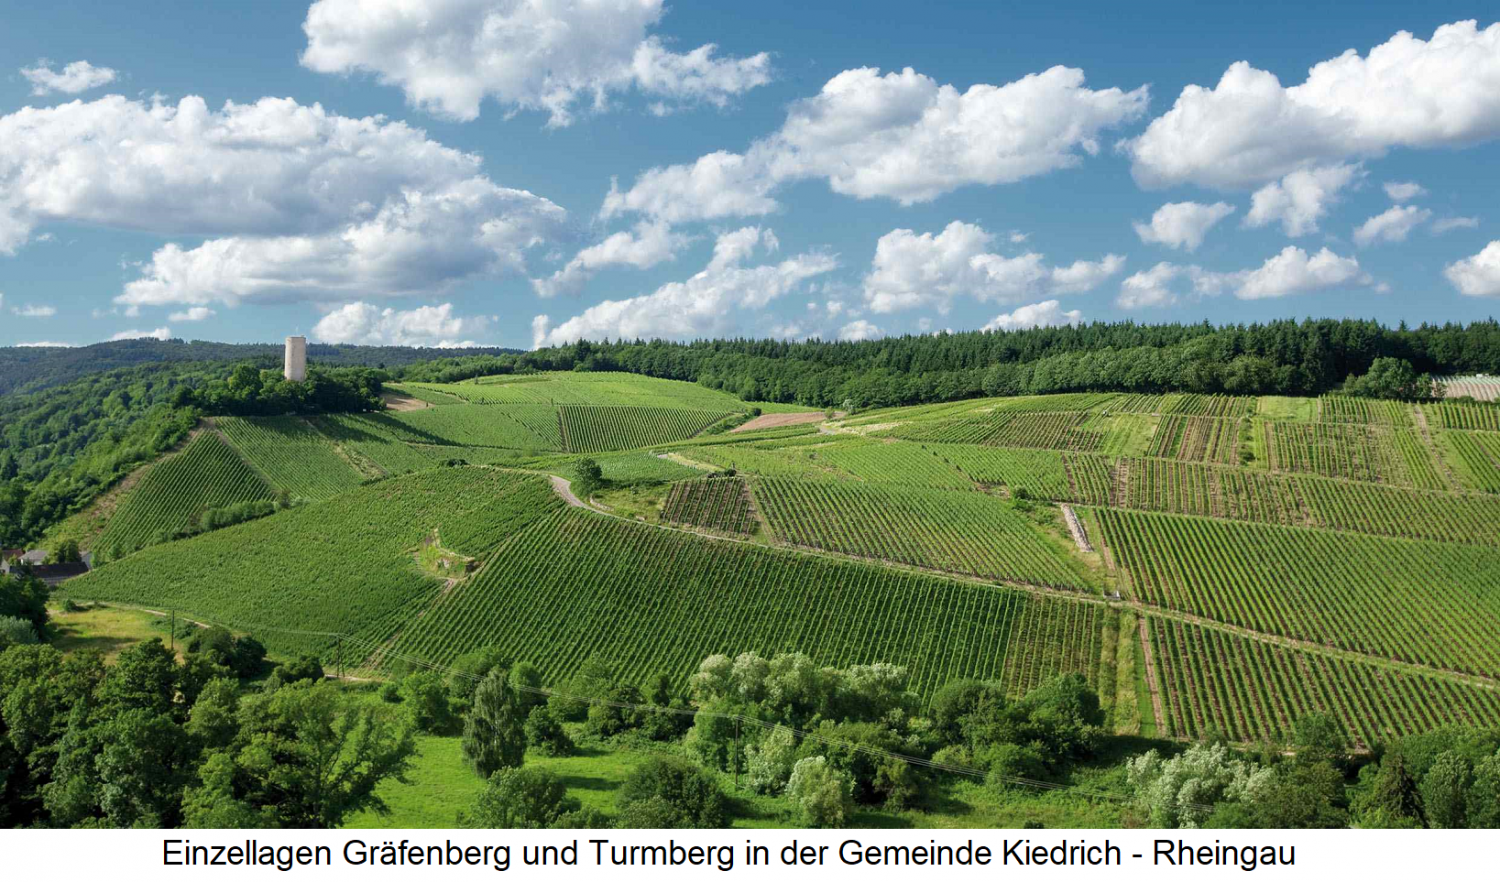 Single layers Gräfenberg and Turmberg in the municipality Kiedrich in the Rheingau